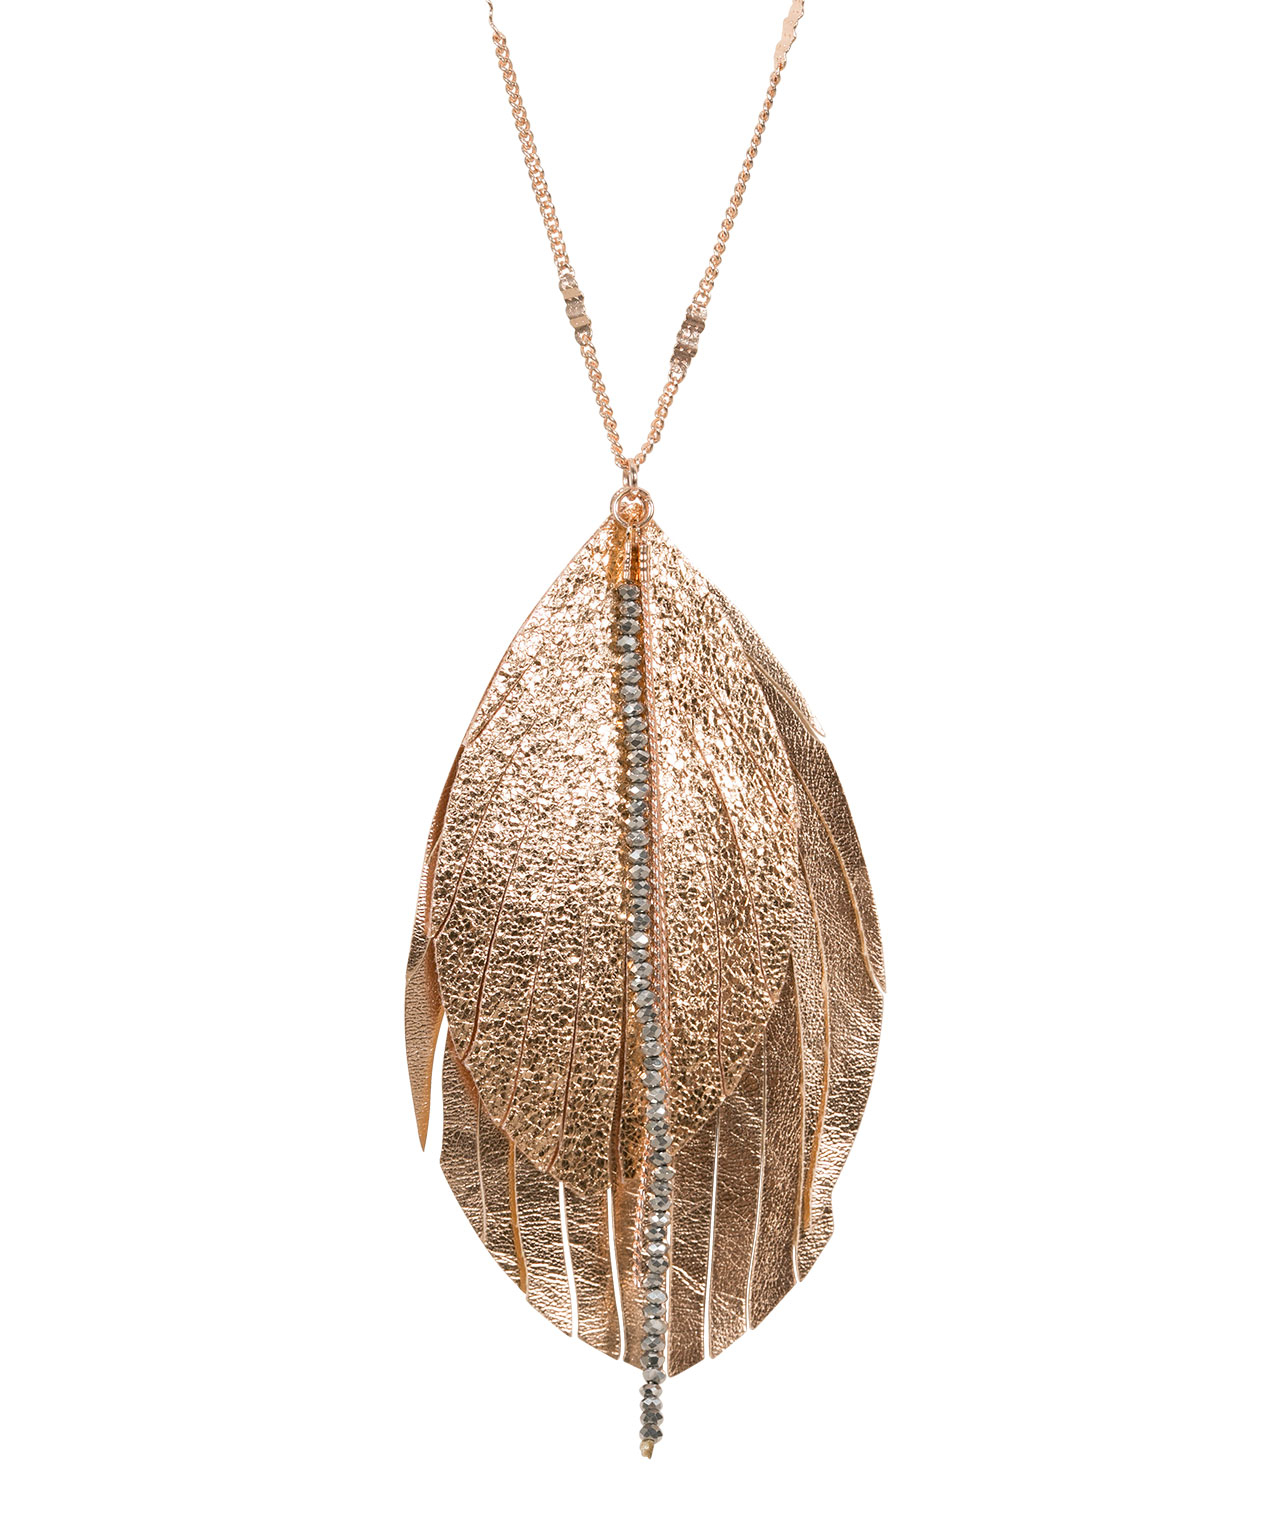 Faux Leather Feather Pendant Necklace | Rose Gold | Rickis In 2019 Golden Tan Leather Feather Choker Necklaces (View 9 of 25)